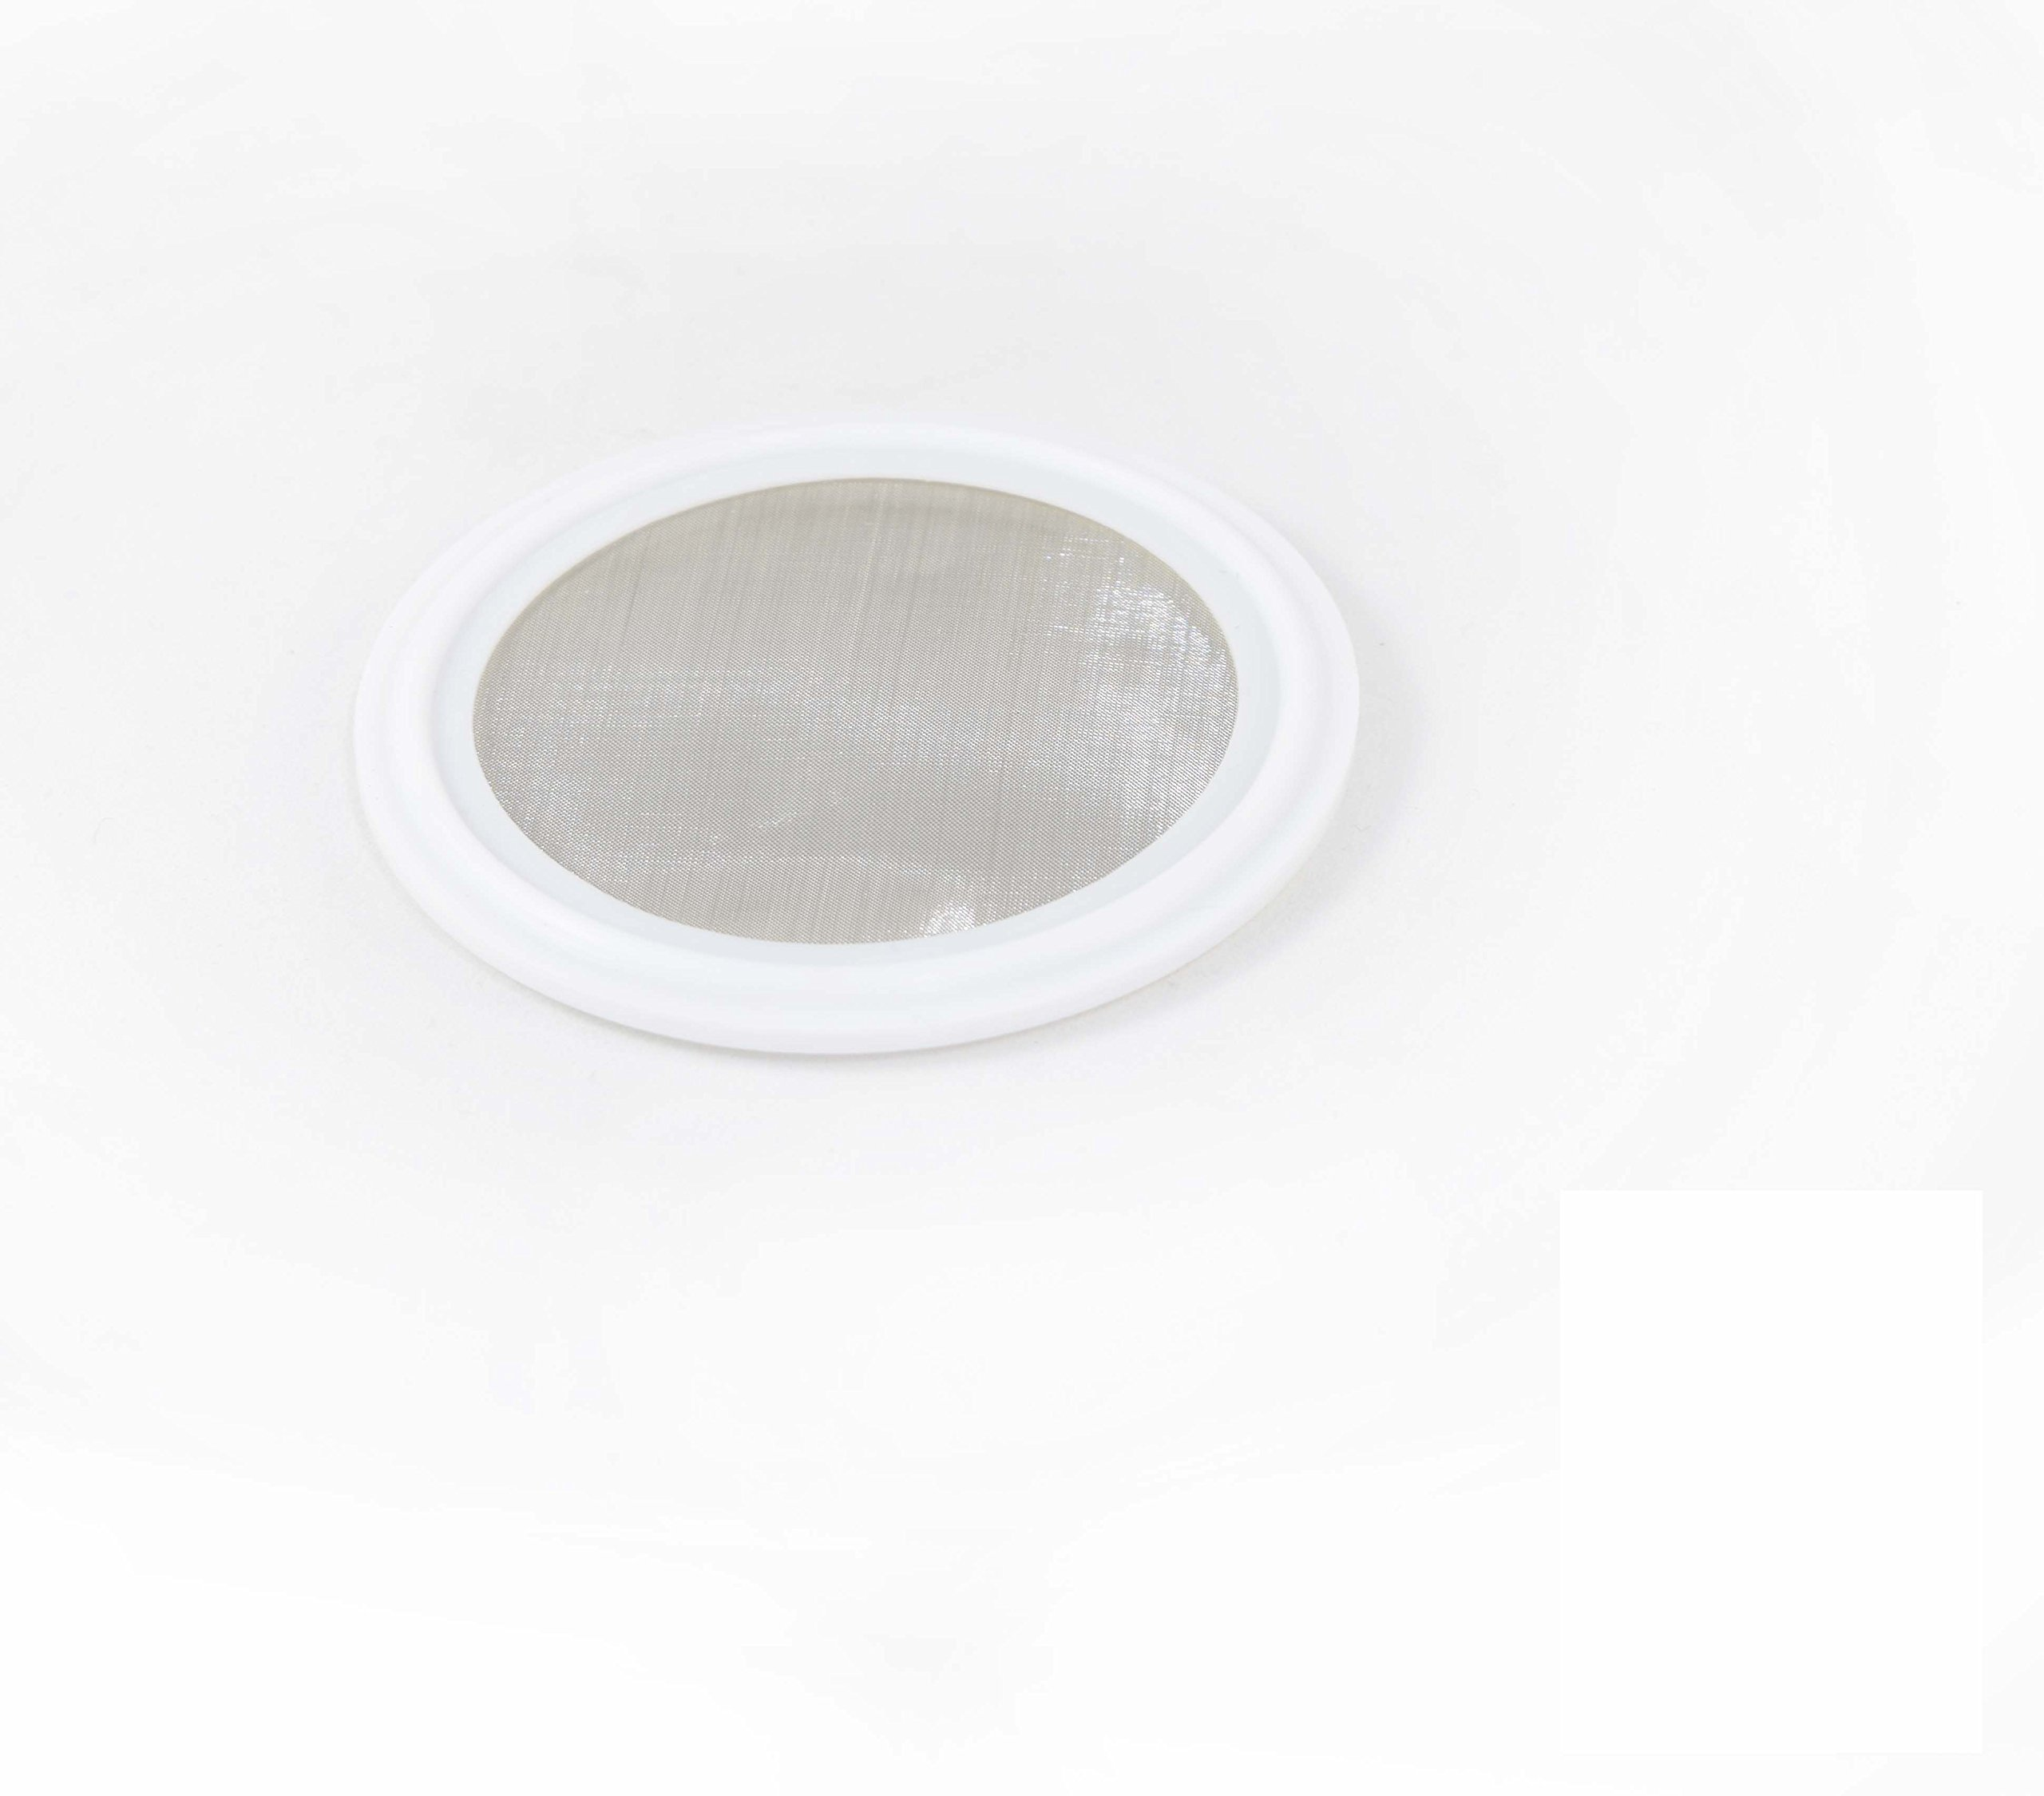 2'' Tri Clamp (Teflon) PTFE Screen Filter Gasket 316L 100Uf Micron Screen Stainless Steel Pharmaceutical Grade Filter Mesh. PTFE Inverted Envelope With Floating Stainless Mesh! With FDA Certification by ARTESIAN SYSTEMS